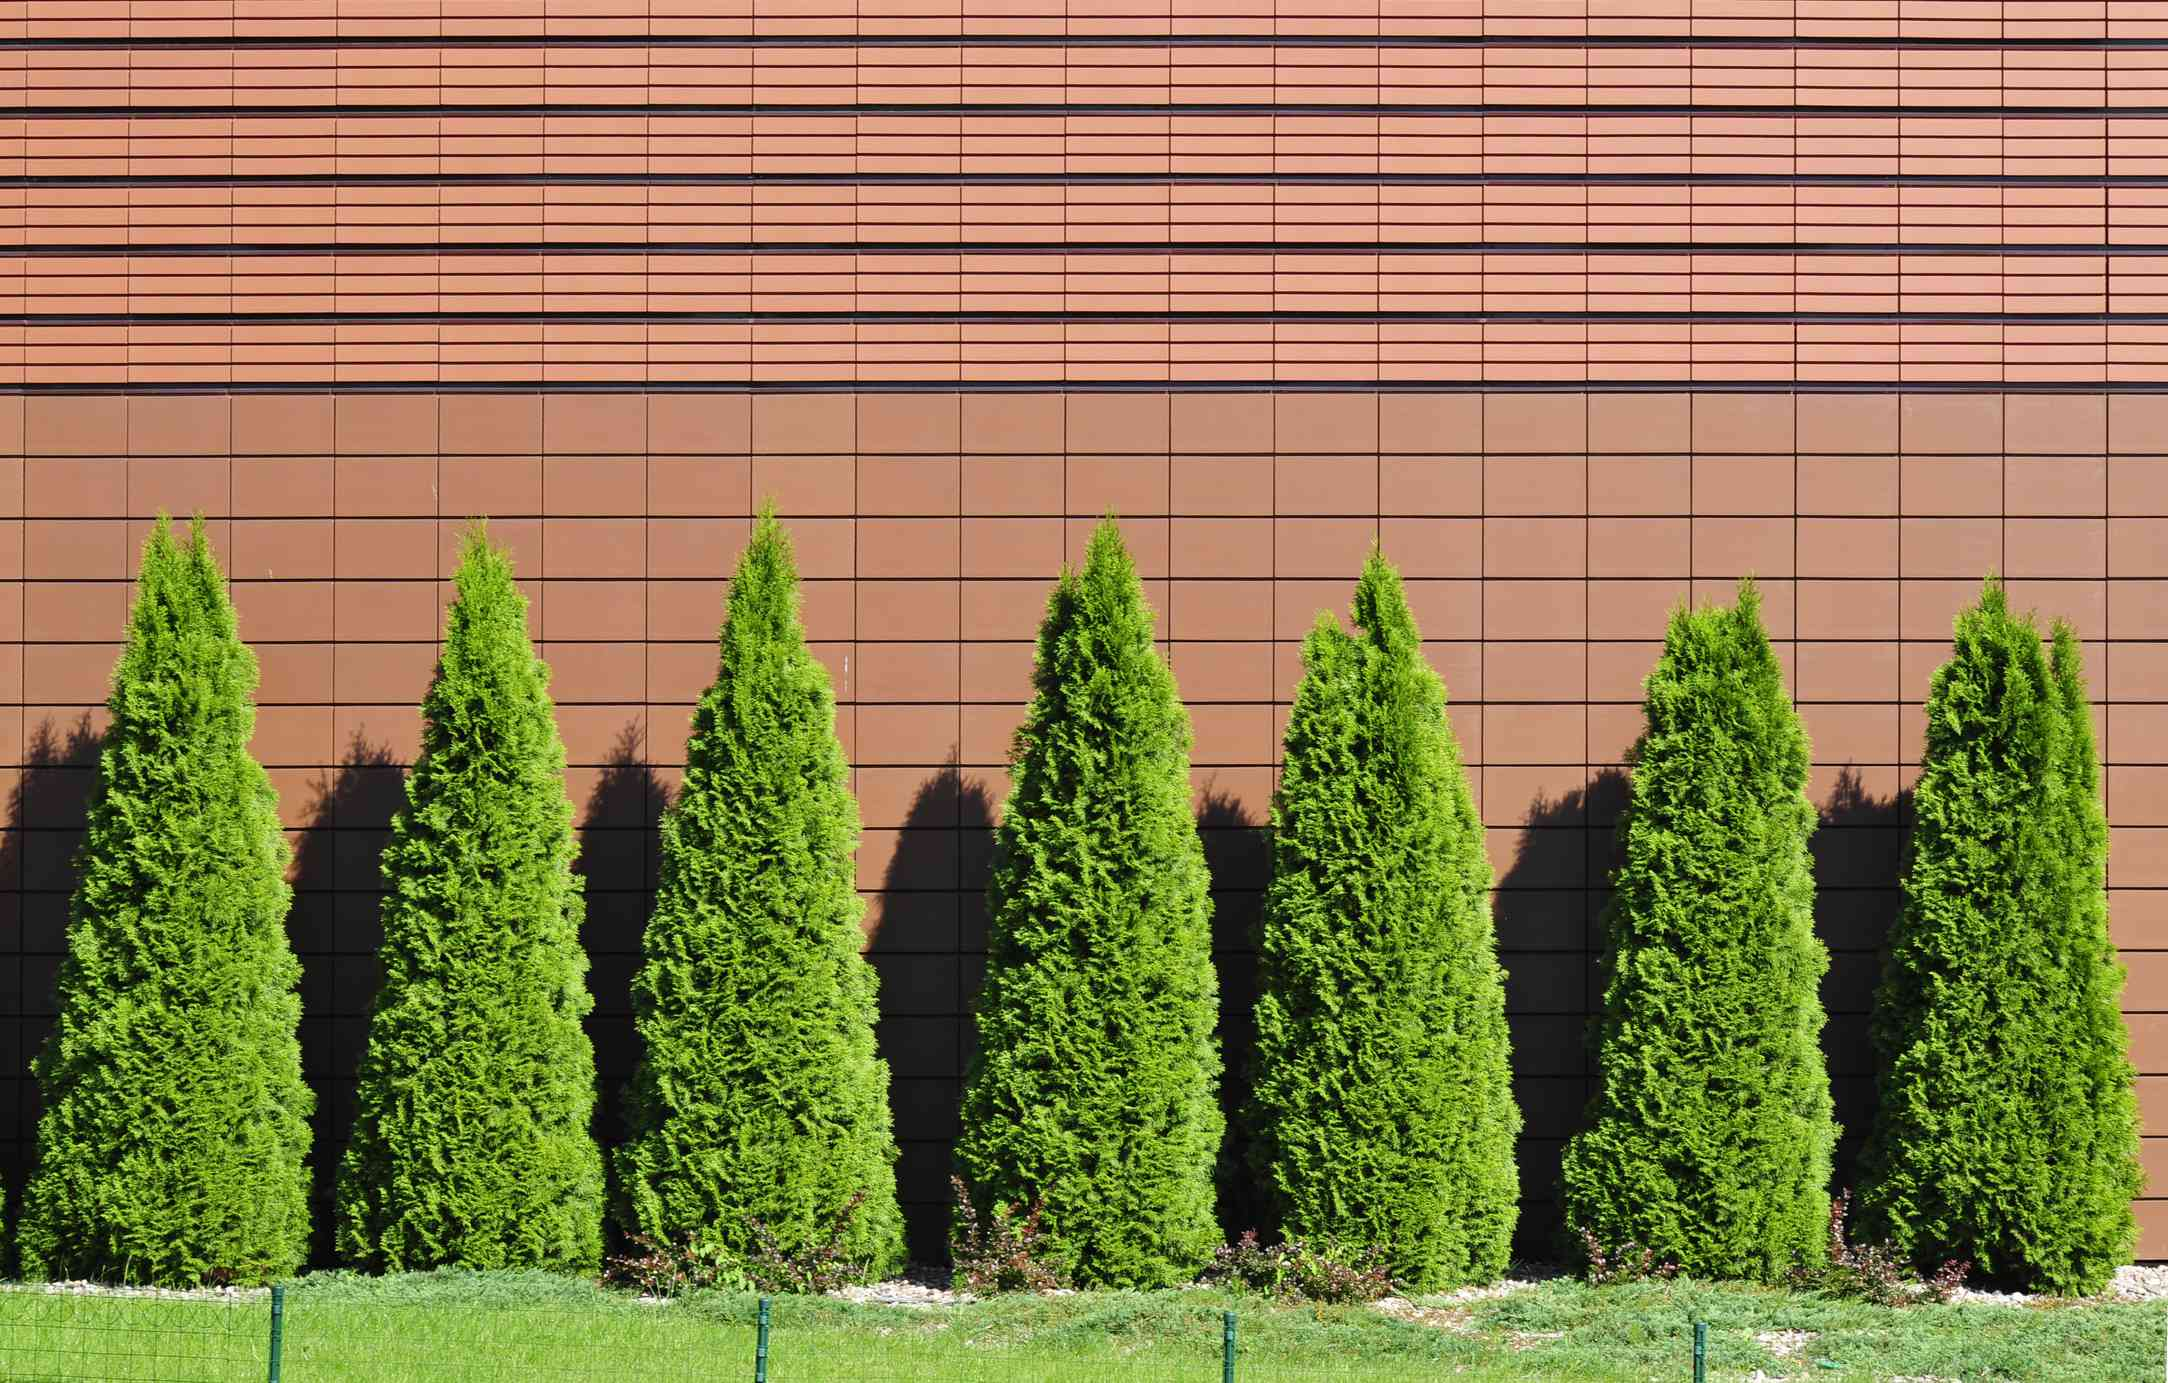 Row of arborvitae against a red wall